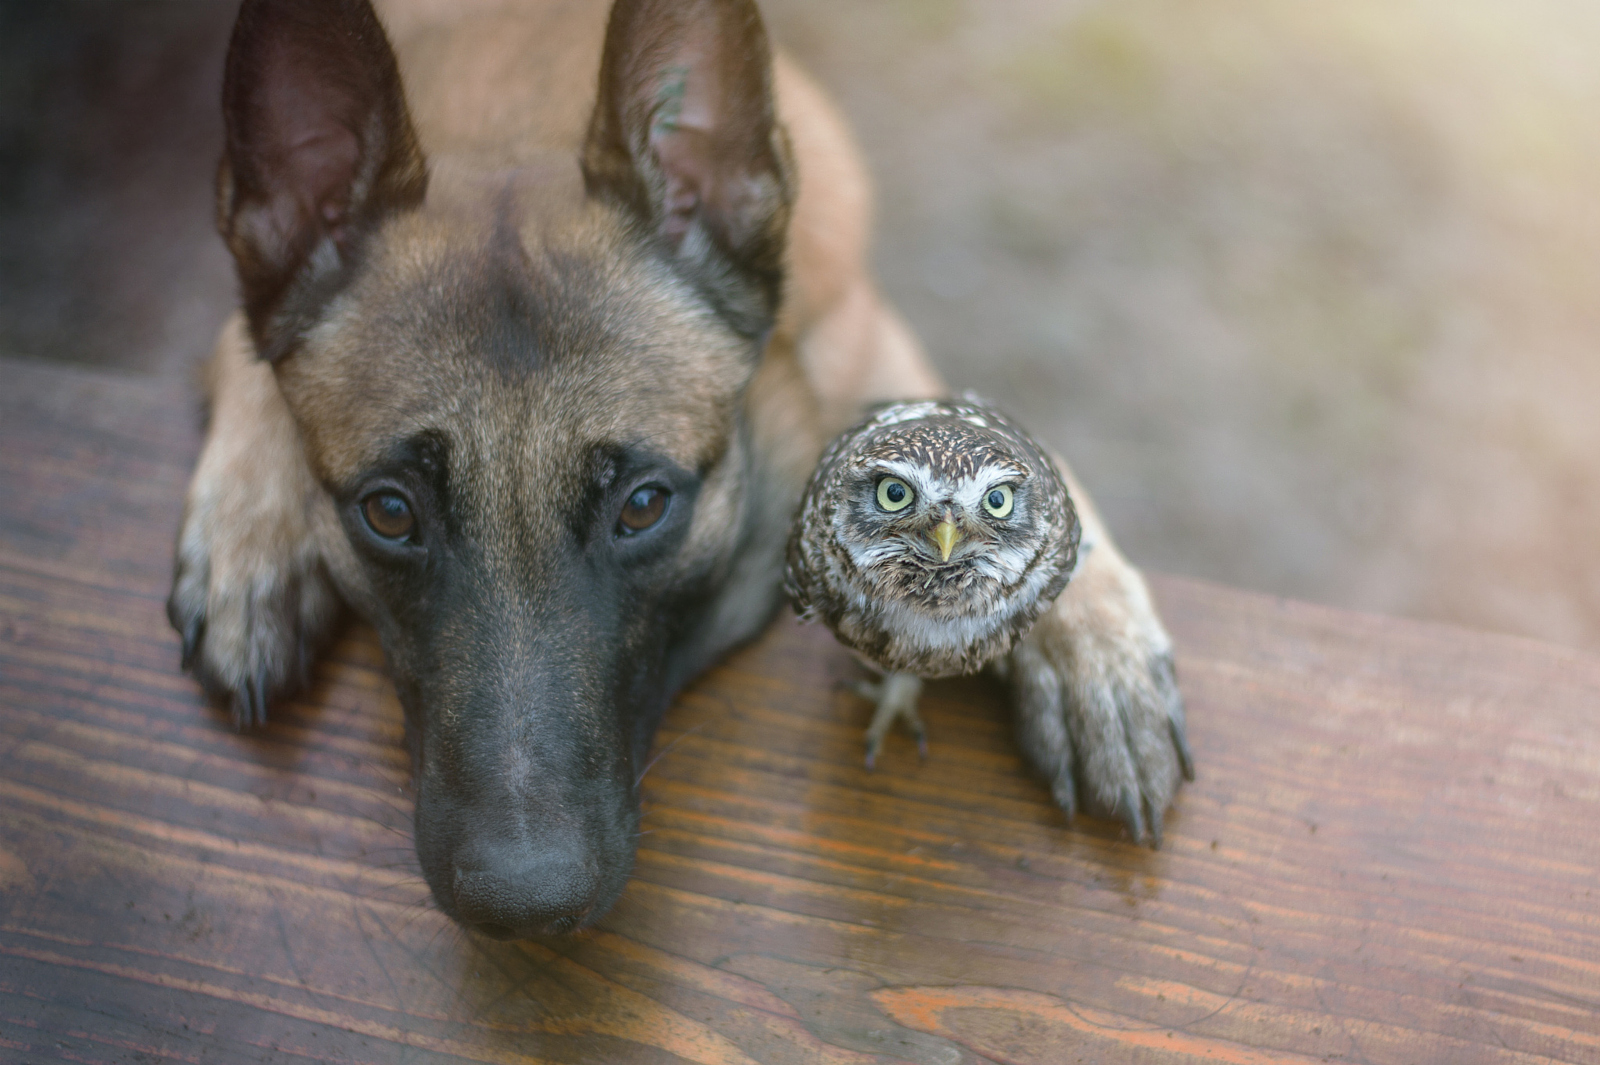 Big and Small, Together at Last: 17 Adorable Animal Photos